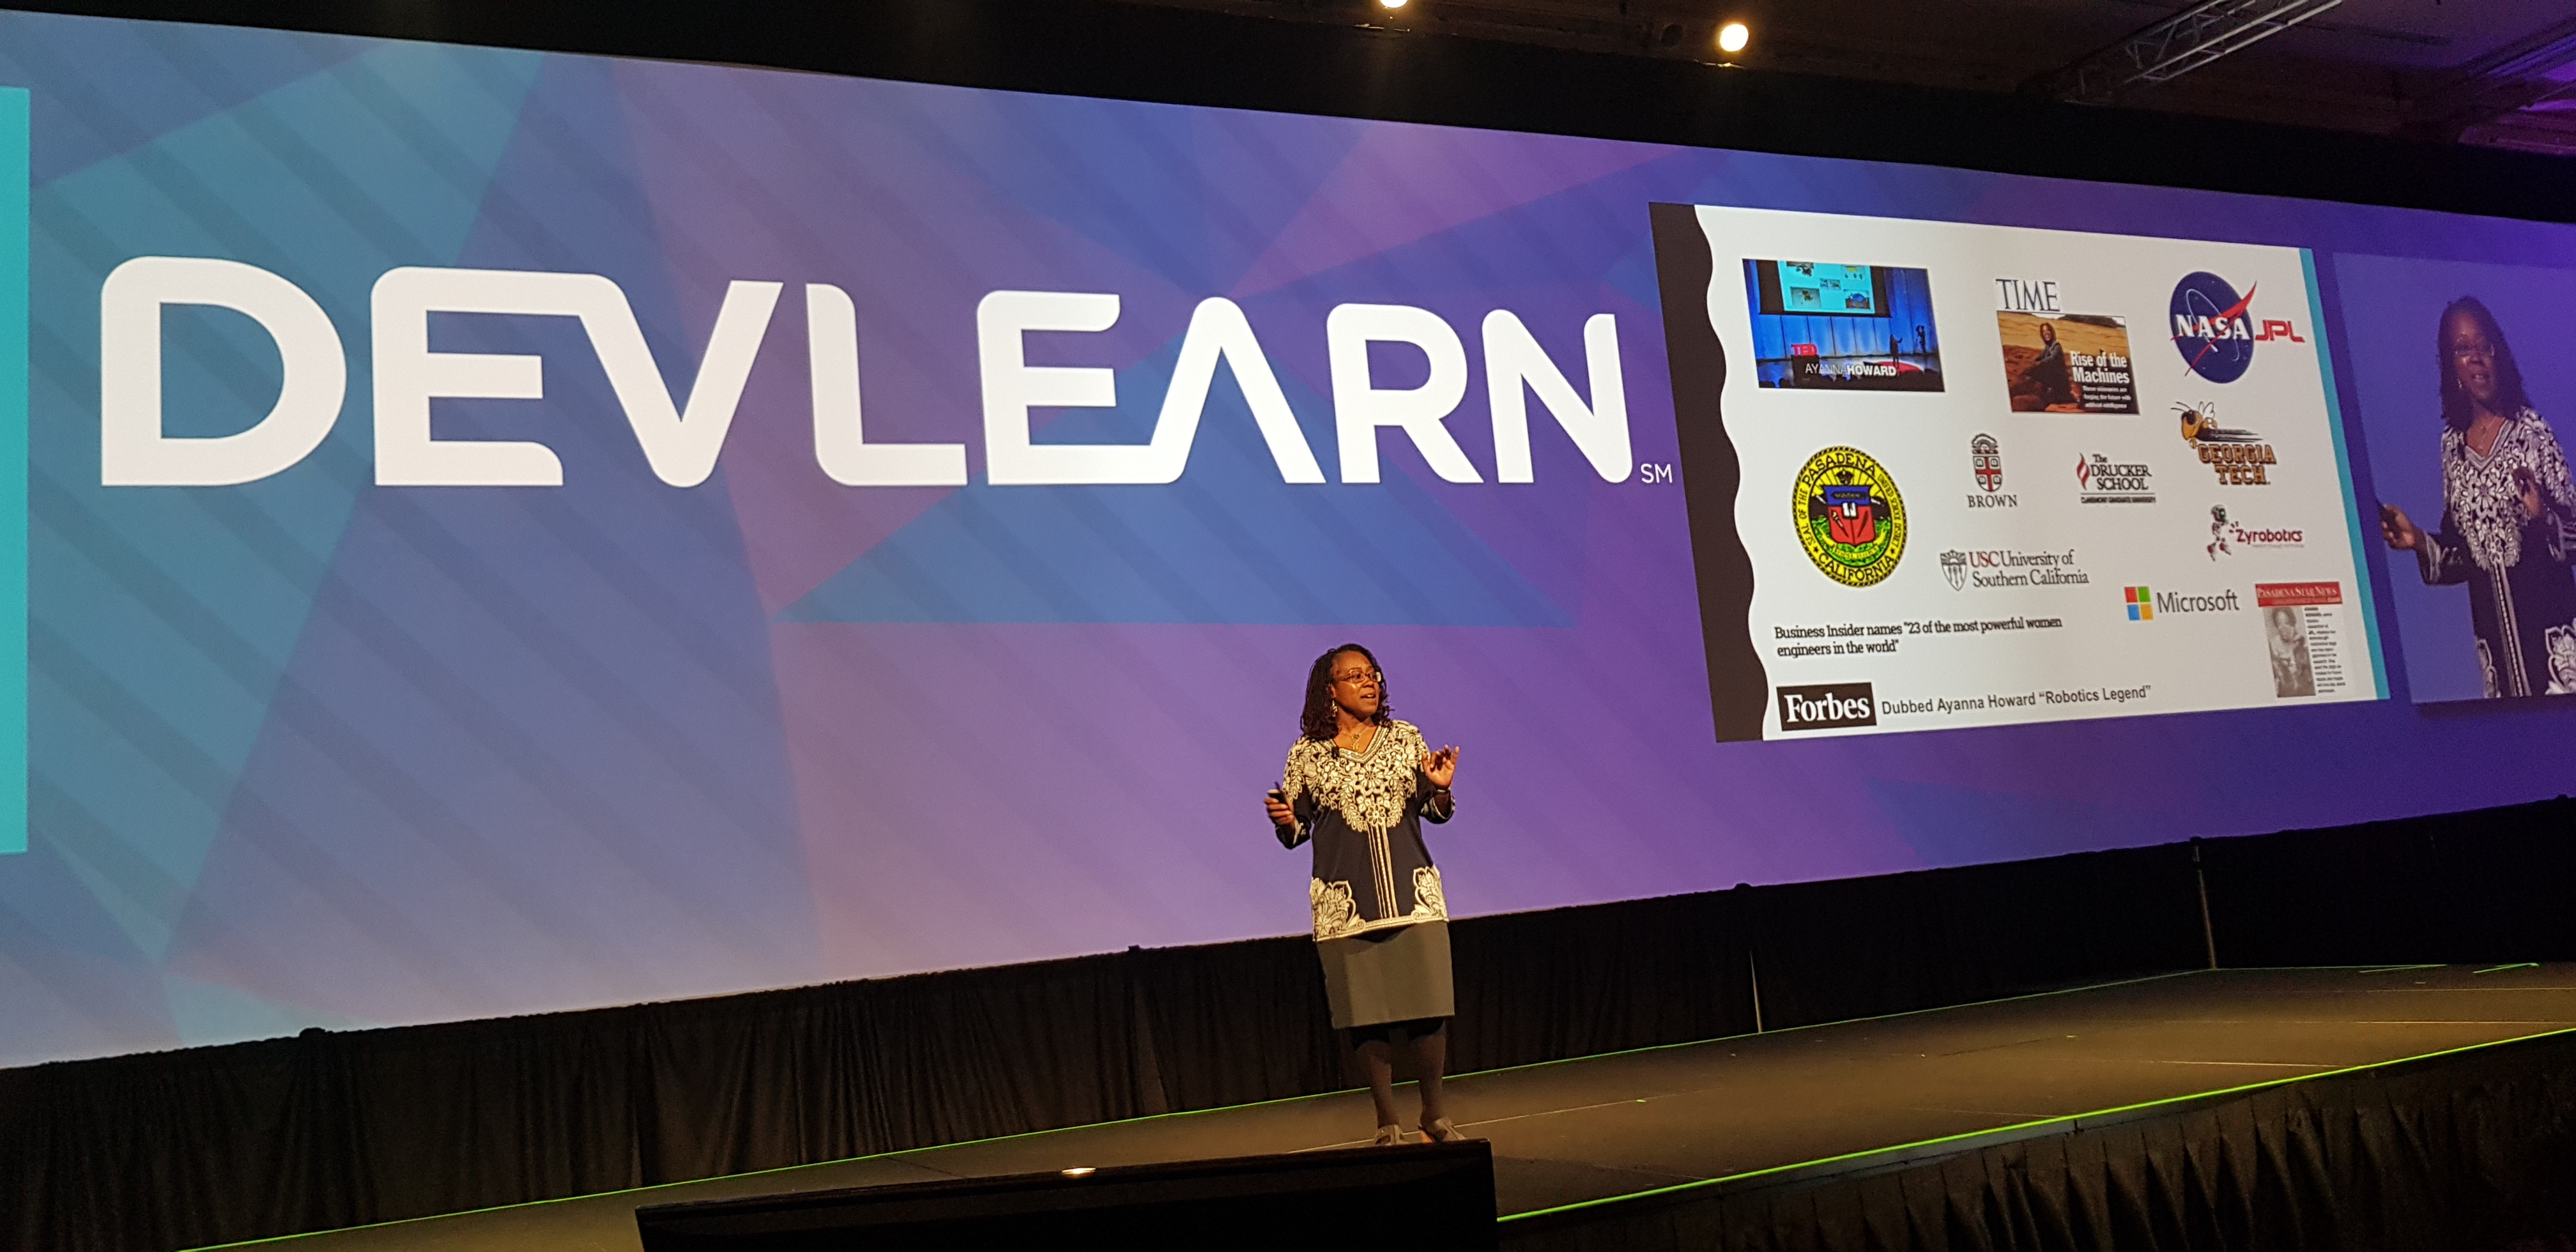 Ayanna Howard on the DevLearn stage